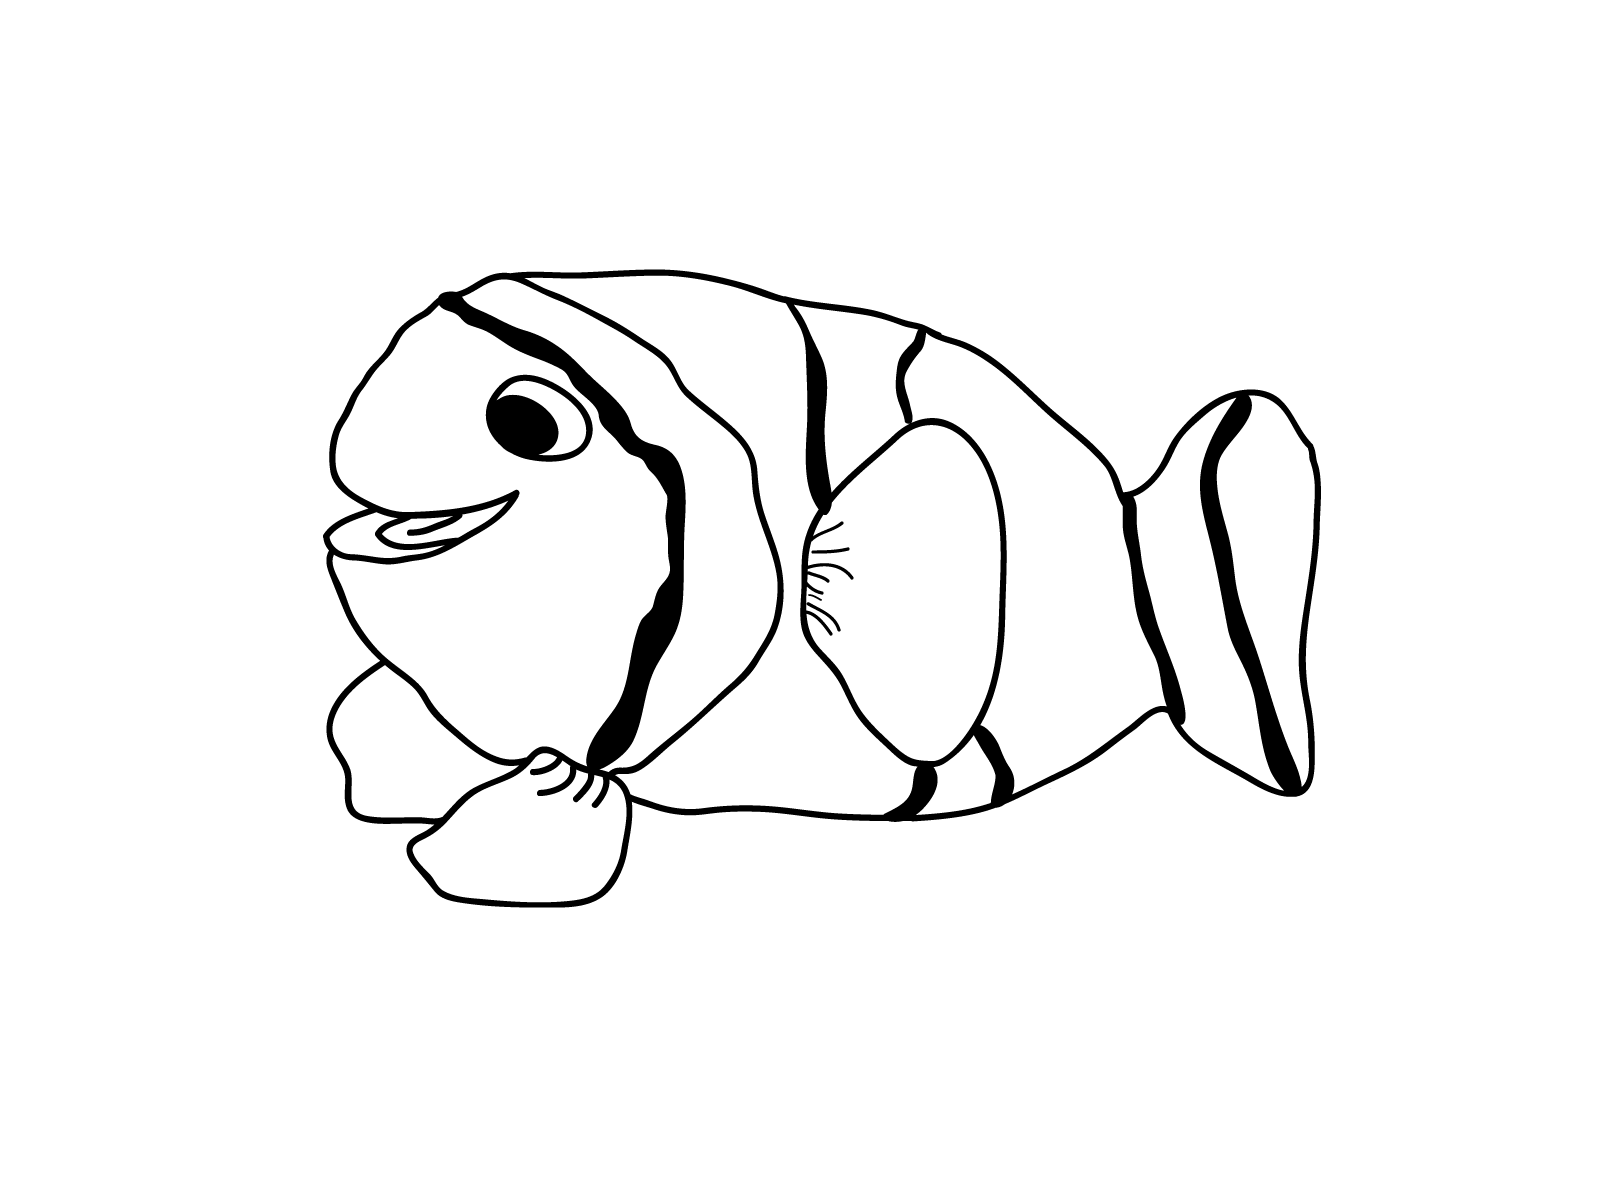 fish coloring pages pbs kids - photo#14